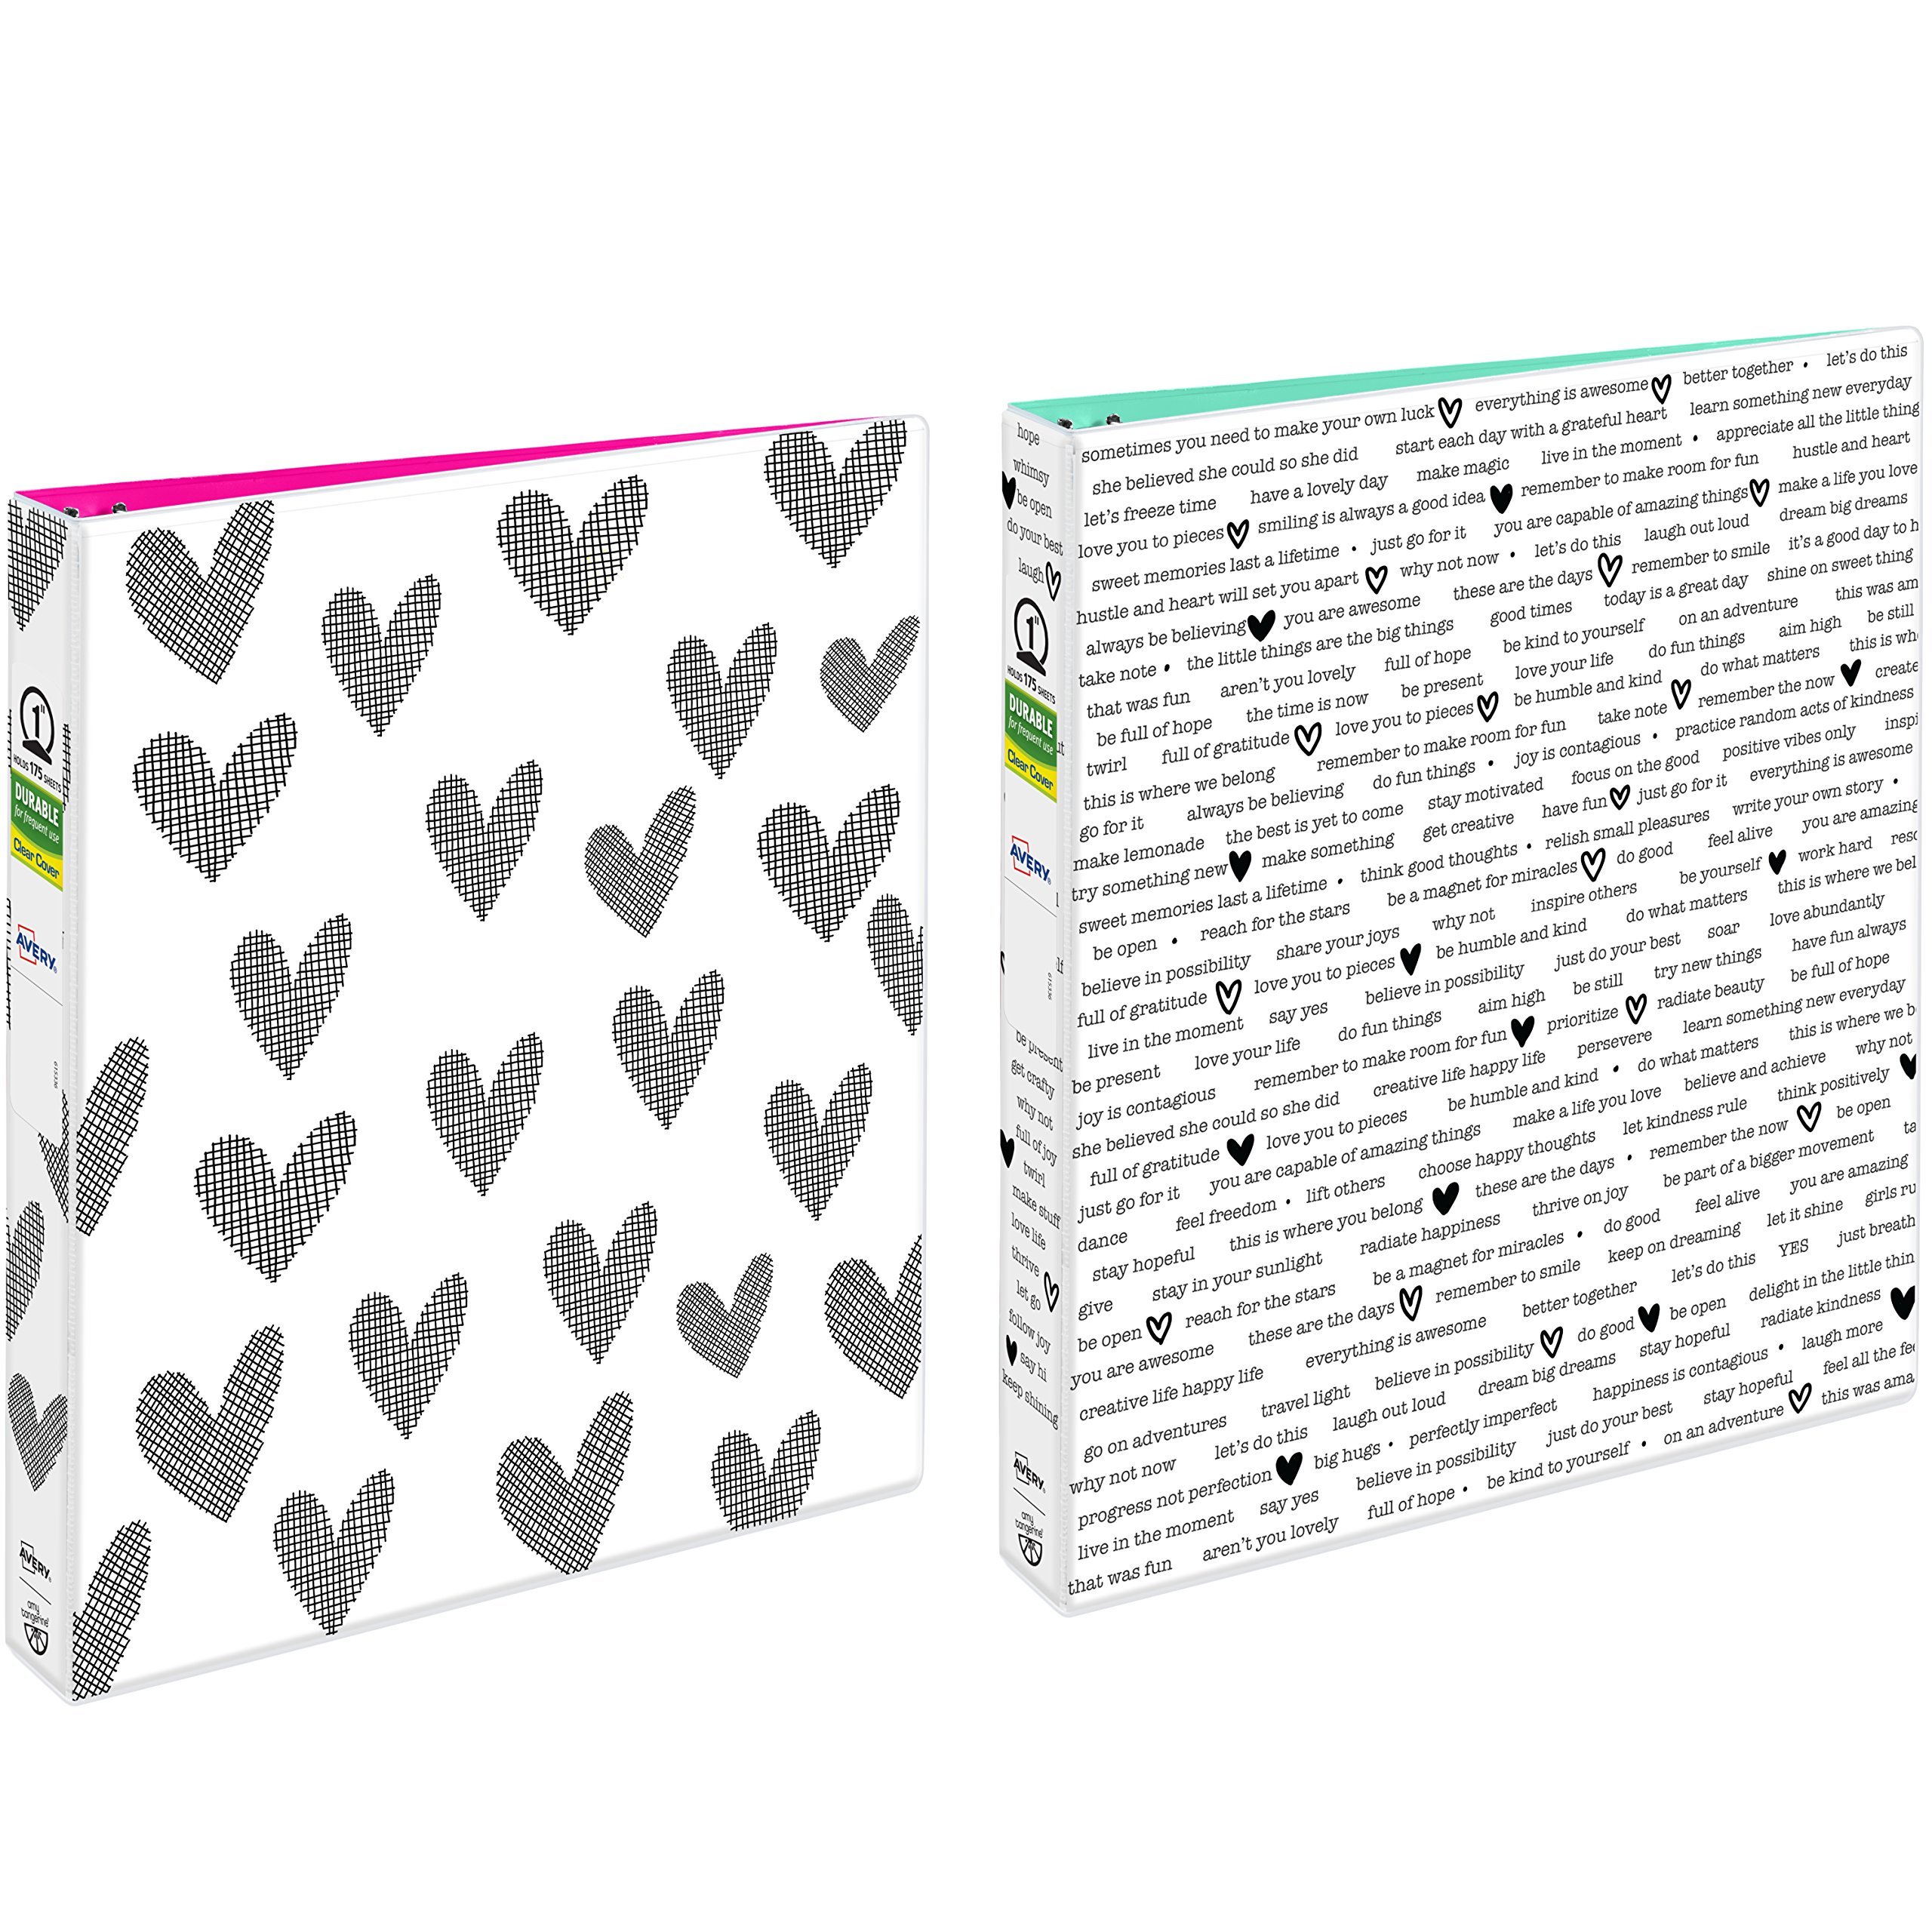 "Avery + Amy Tangerine Designer Binders, 1"" Round Rings, 175-Sheet Capacity, Hearts & Inspiration, 2 Binders (26852)"